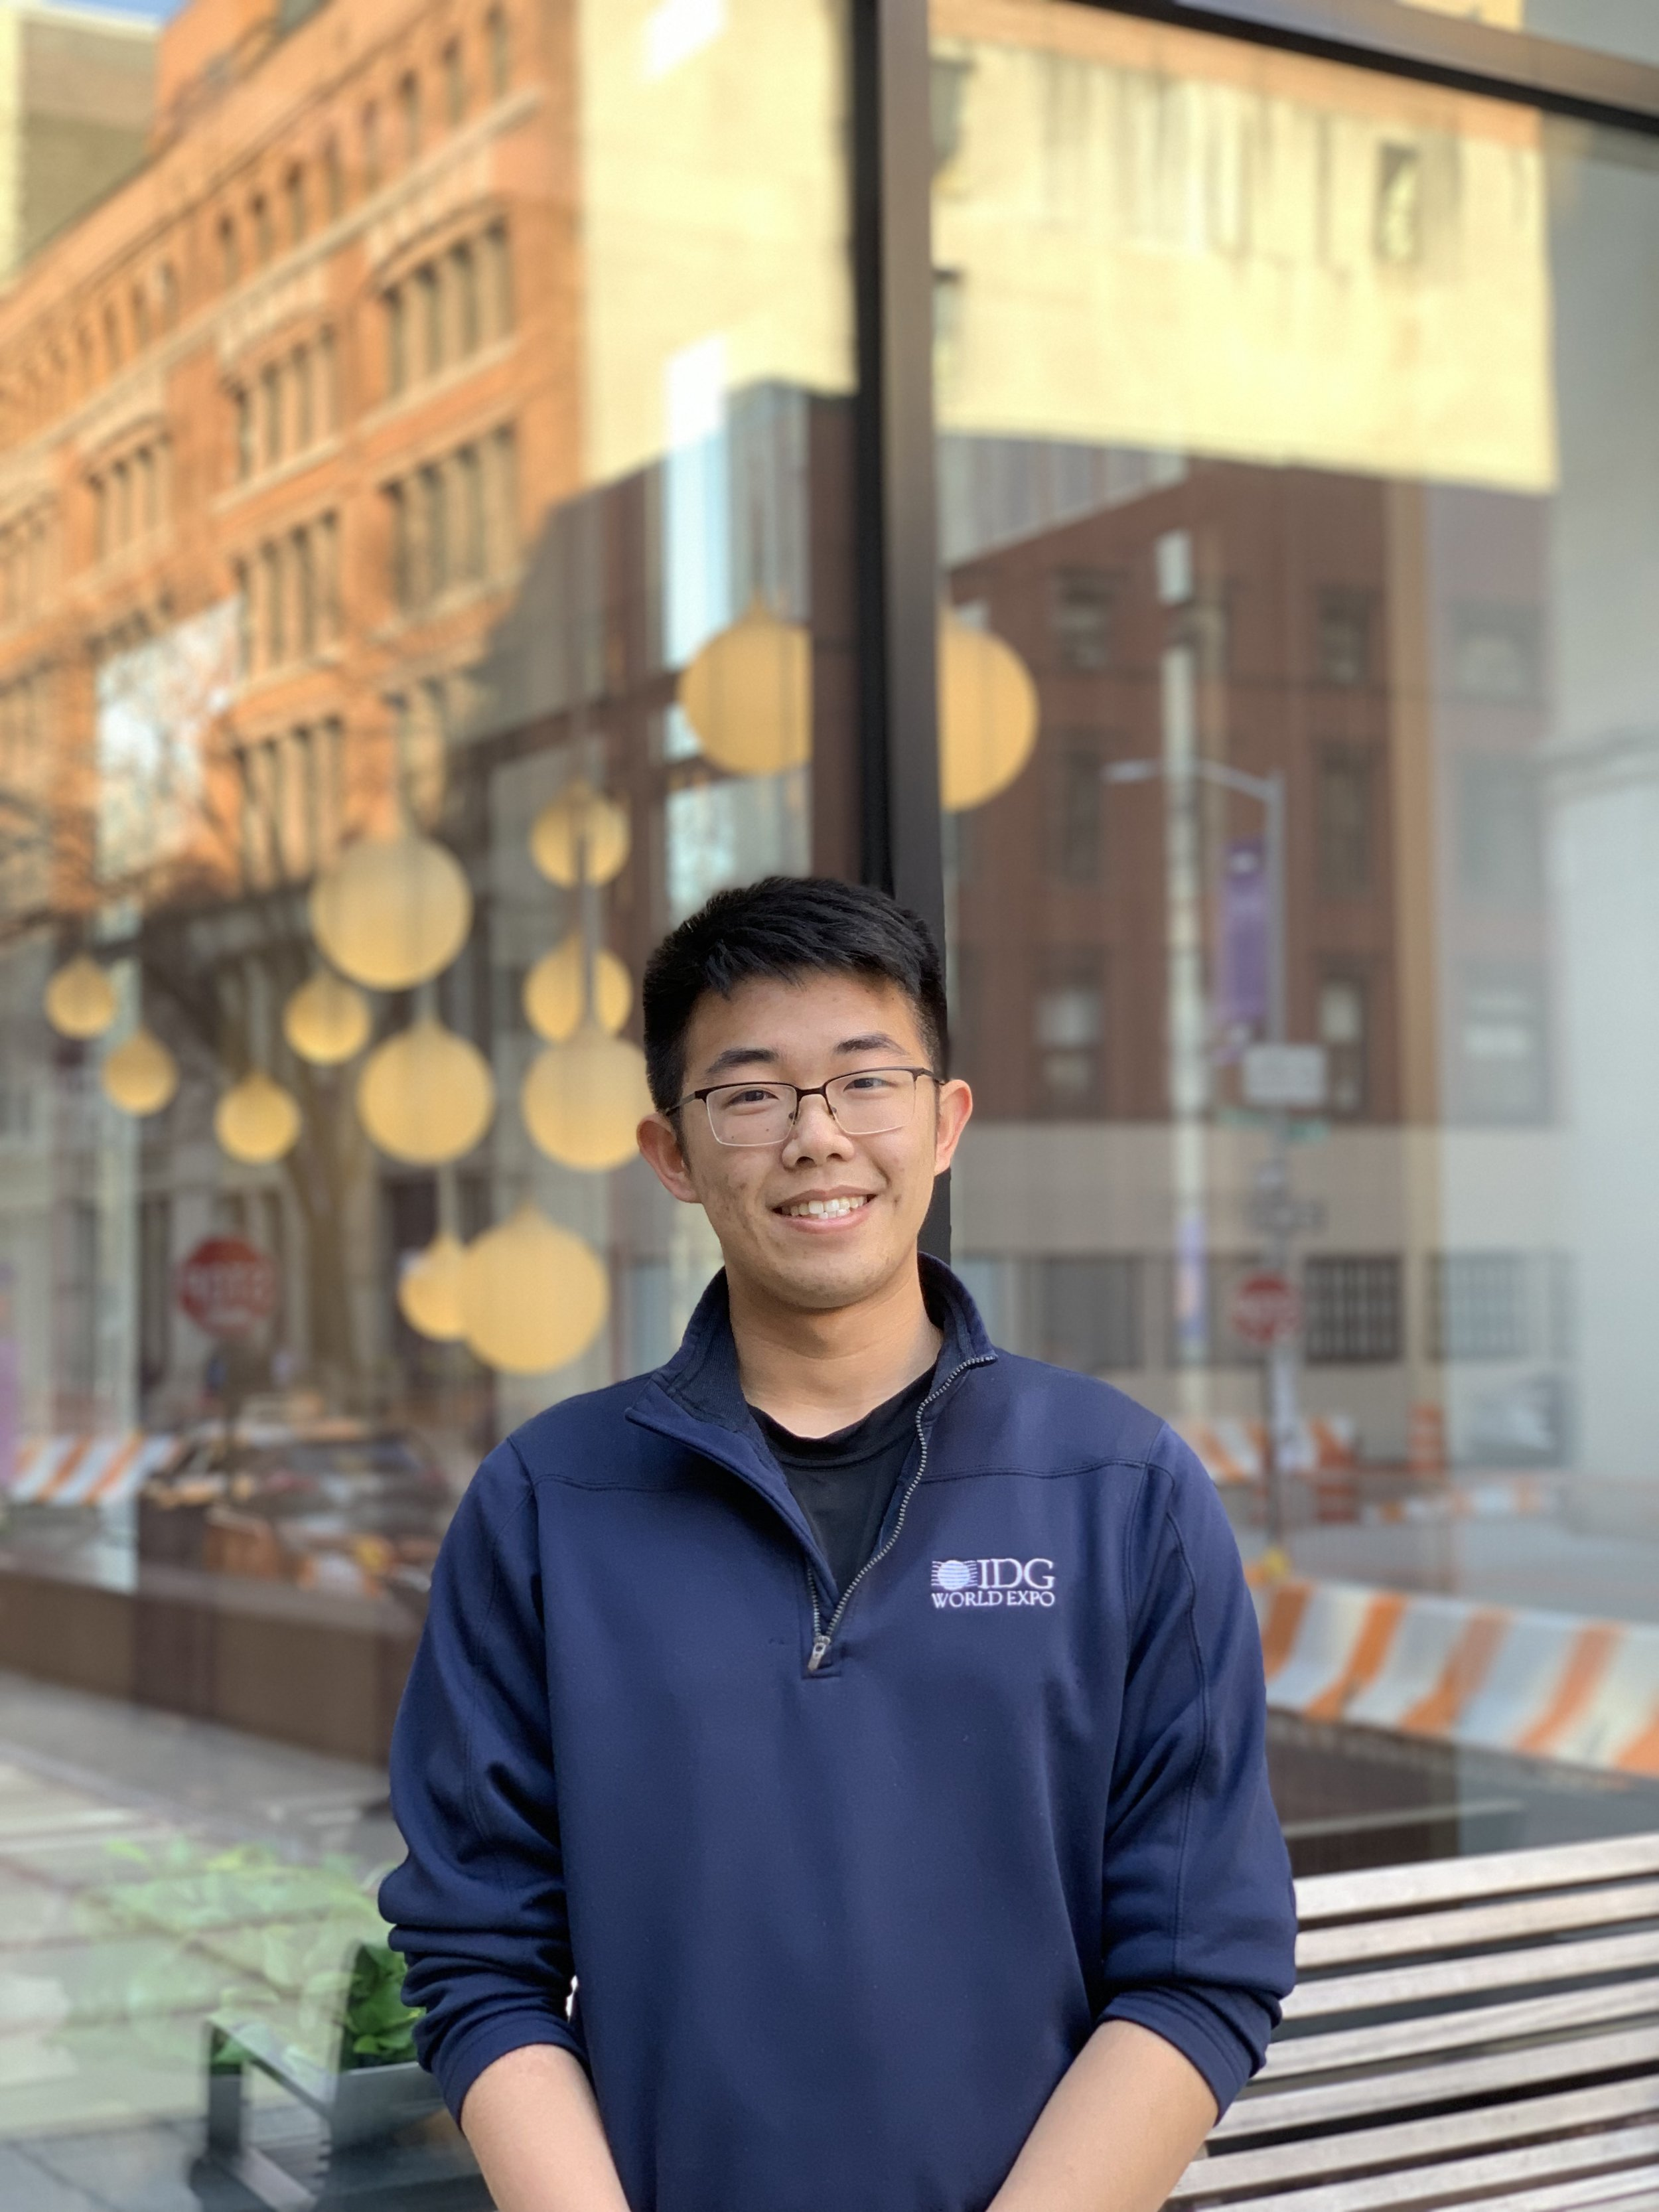 Weiting Hong    Quantitative Analyst   Weiting is a sophomore from Shenzhen, China. He intends to study Finance and Econometrics at Stern while pursuing a Computer Science minor at CAS. In his free time, he likes to read online novels and hang out with friends for movies and games.